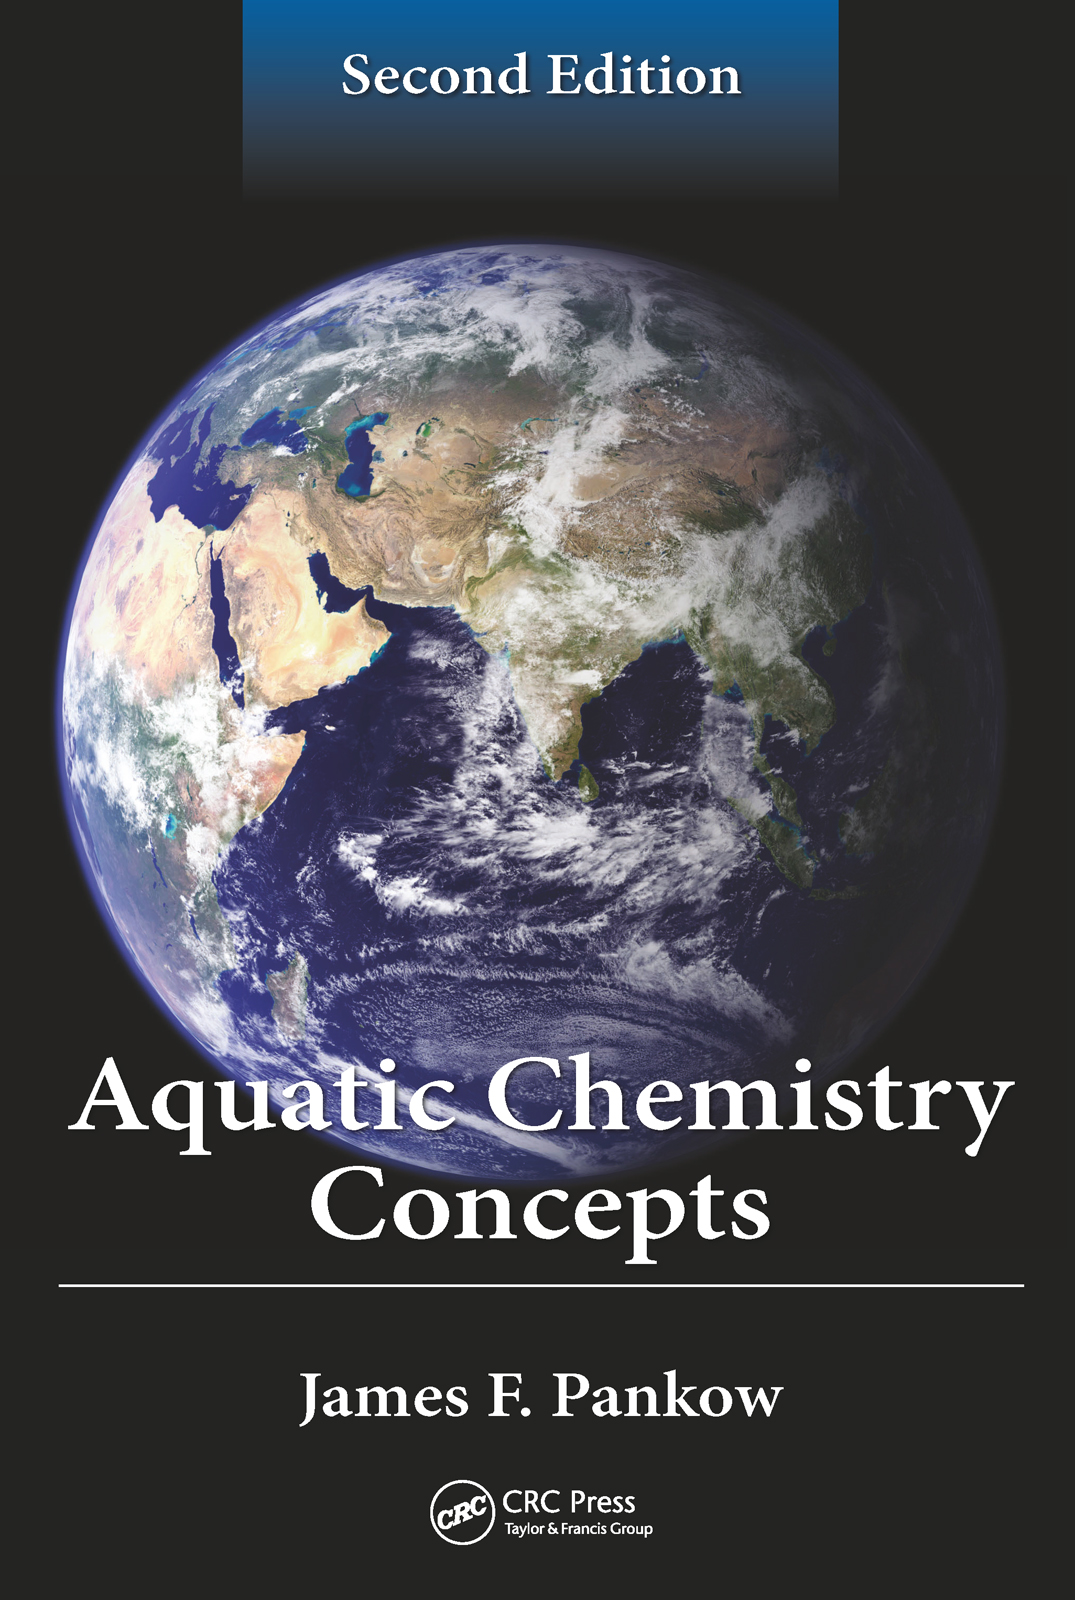 Aquatic Chemistry Concepts, Second Edition book cover